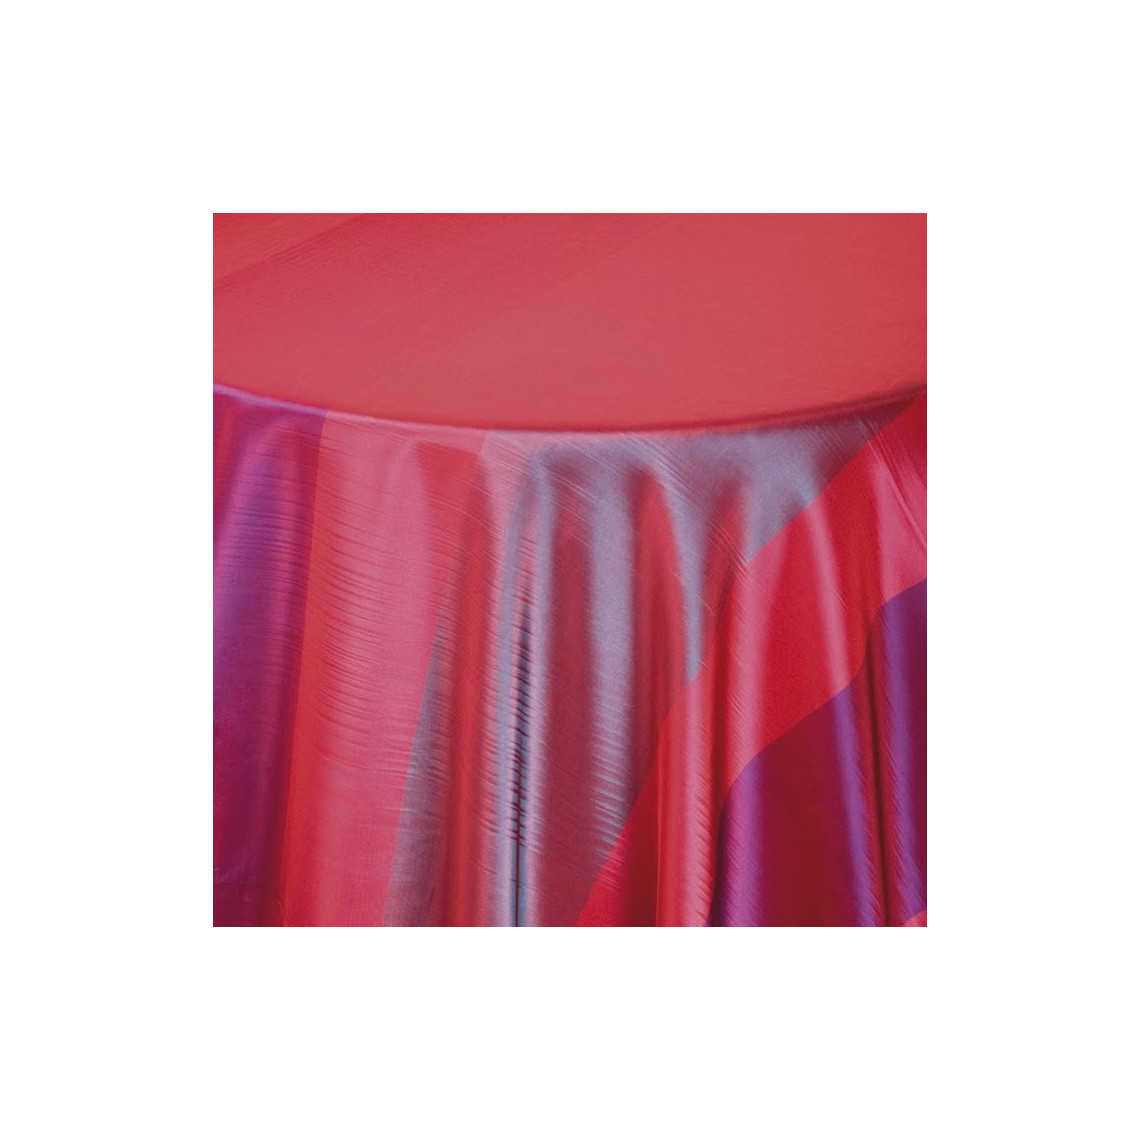 Chemin de table Symphonie rouge/violet (M1)